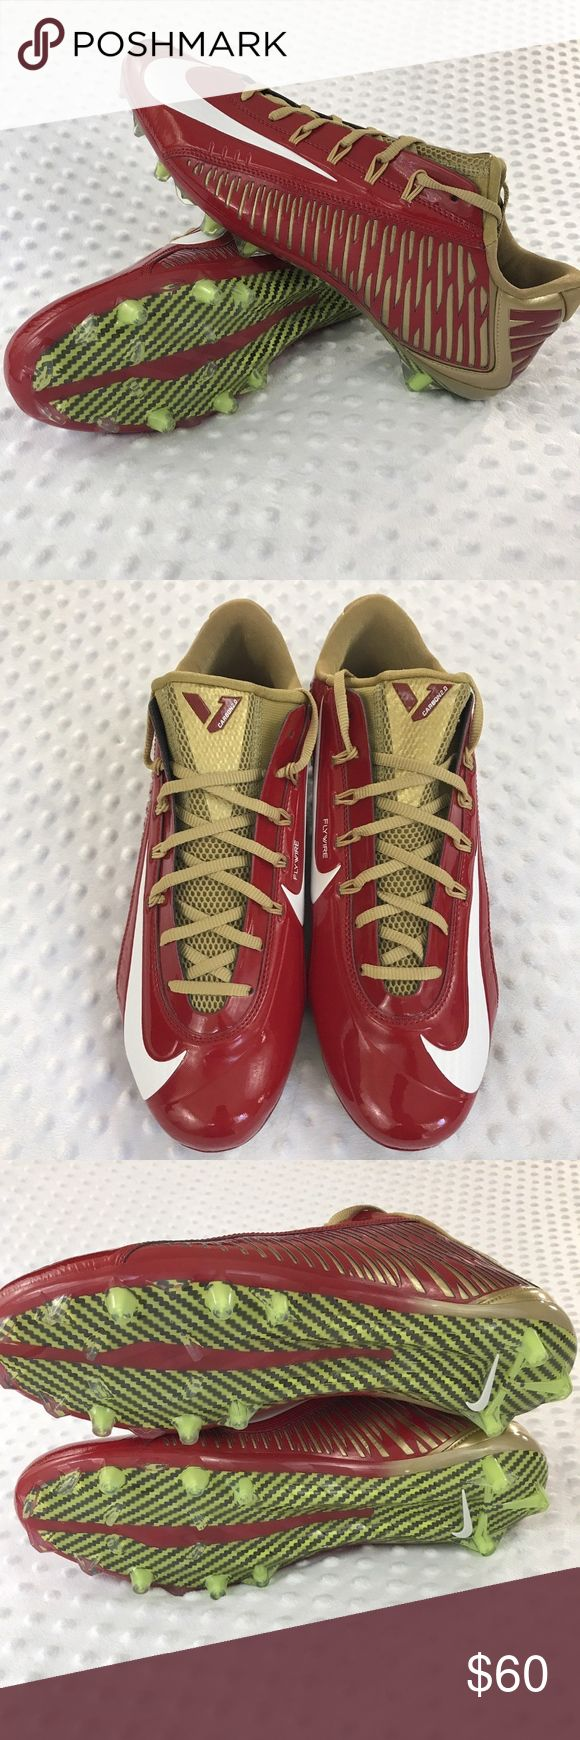 Nike Vapor Carbon 2.0 Cleats Item: Official Nike Vapor Carbon 2.0 Football Cleats 657441-628 Men's Sz 12.5 Red Gold Size: 12.5 Base Color:  Red, Gold, White New Without Box Nike Shoes Athletic Shoes